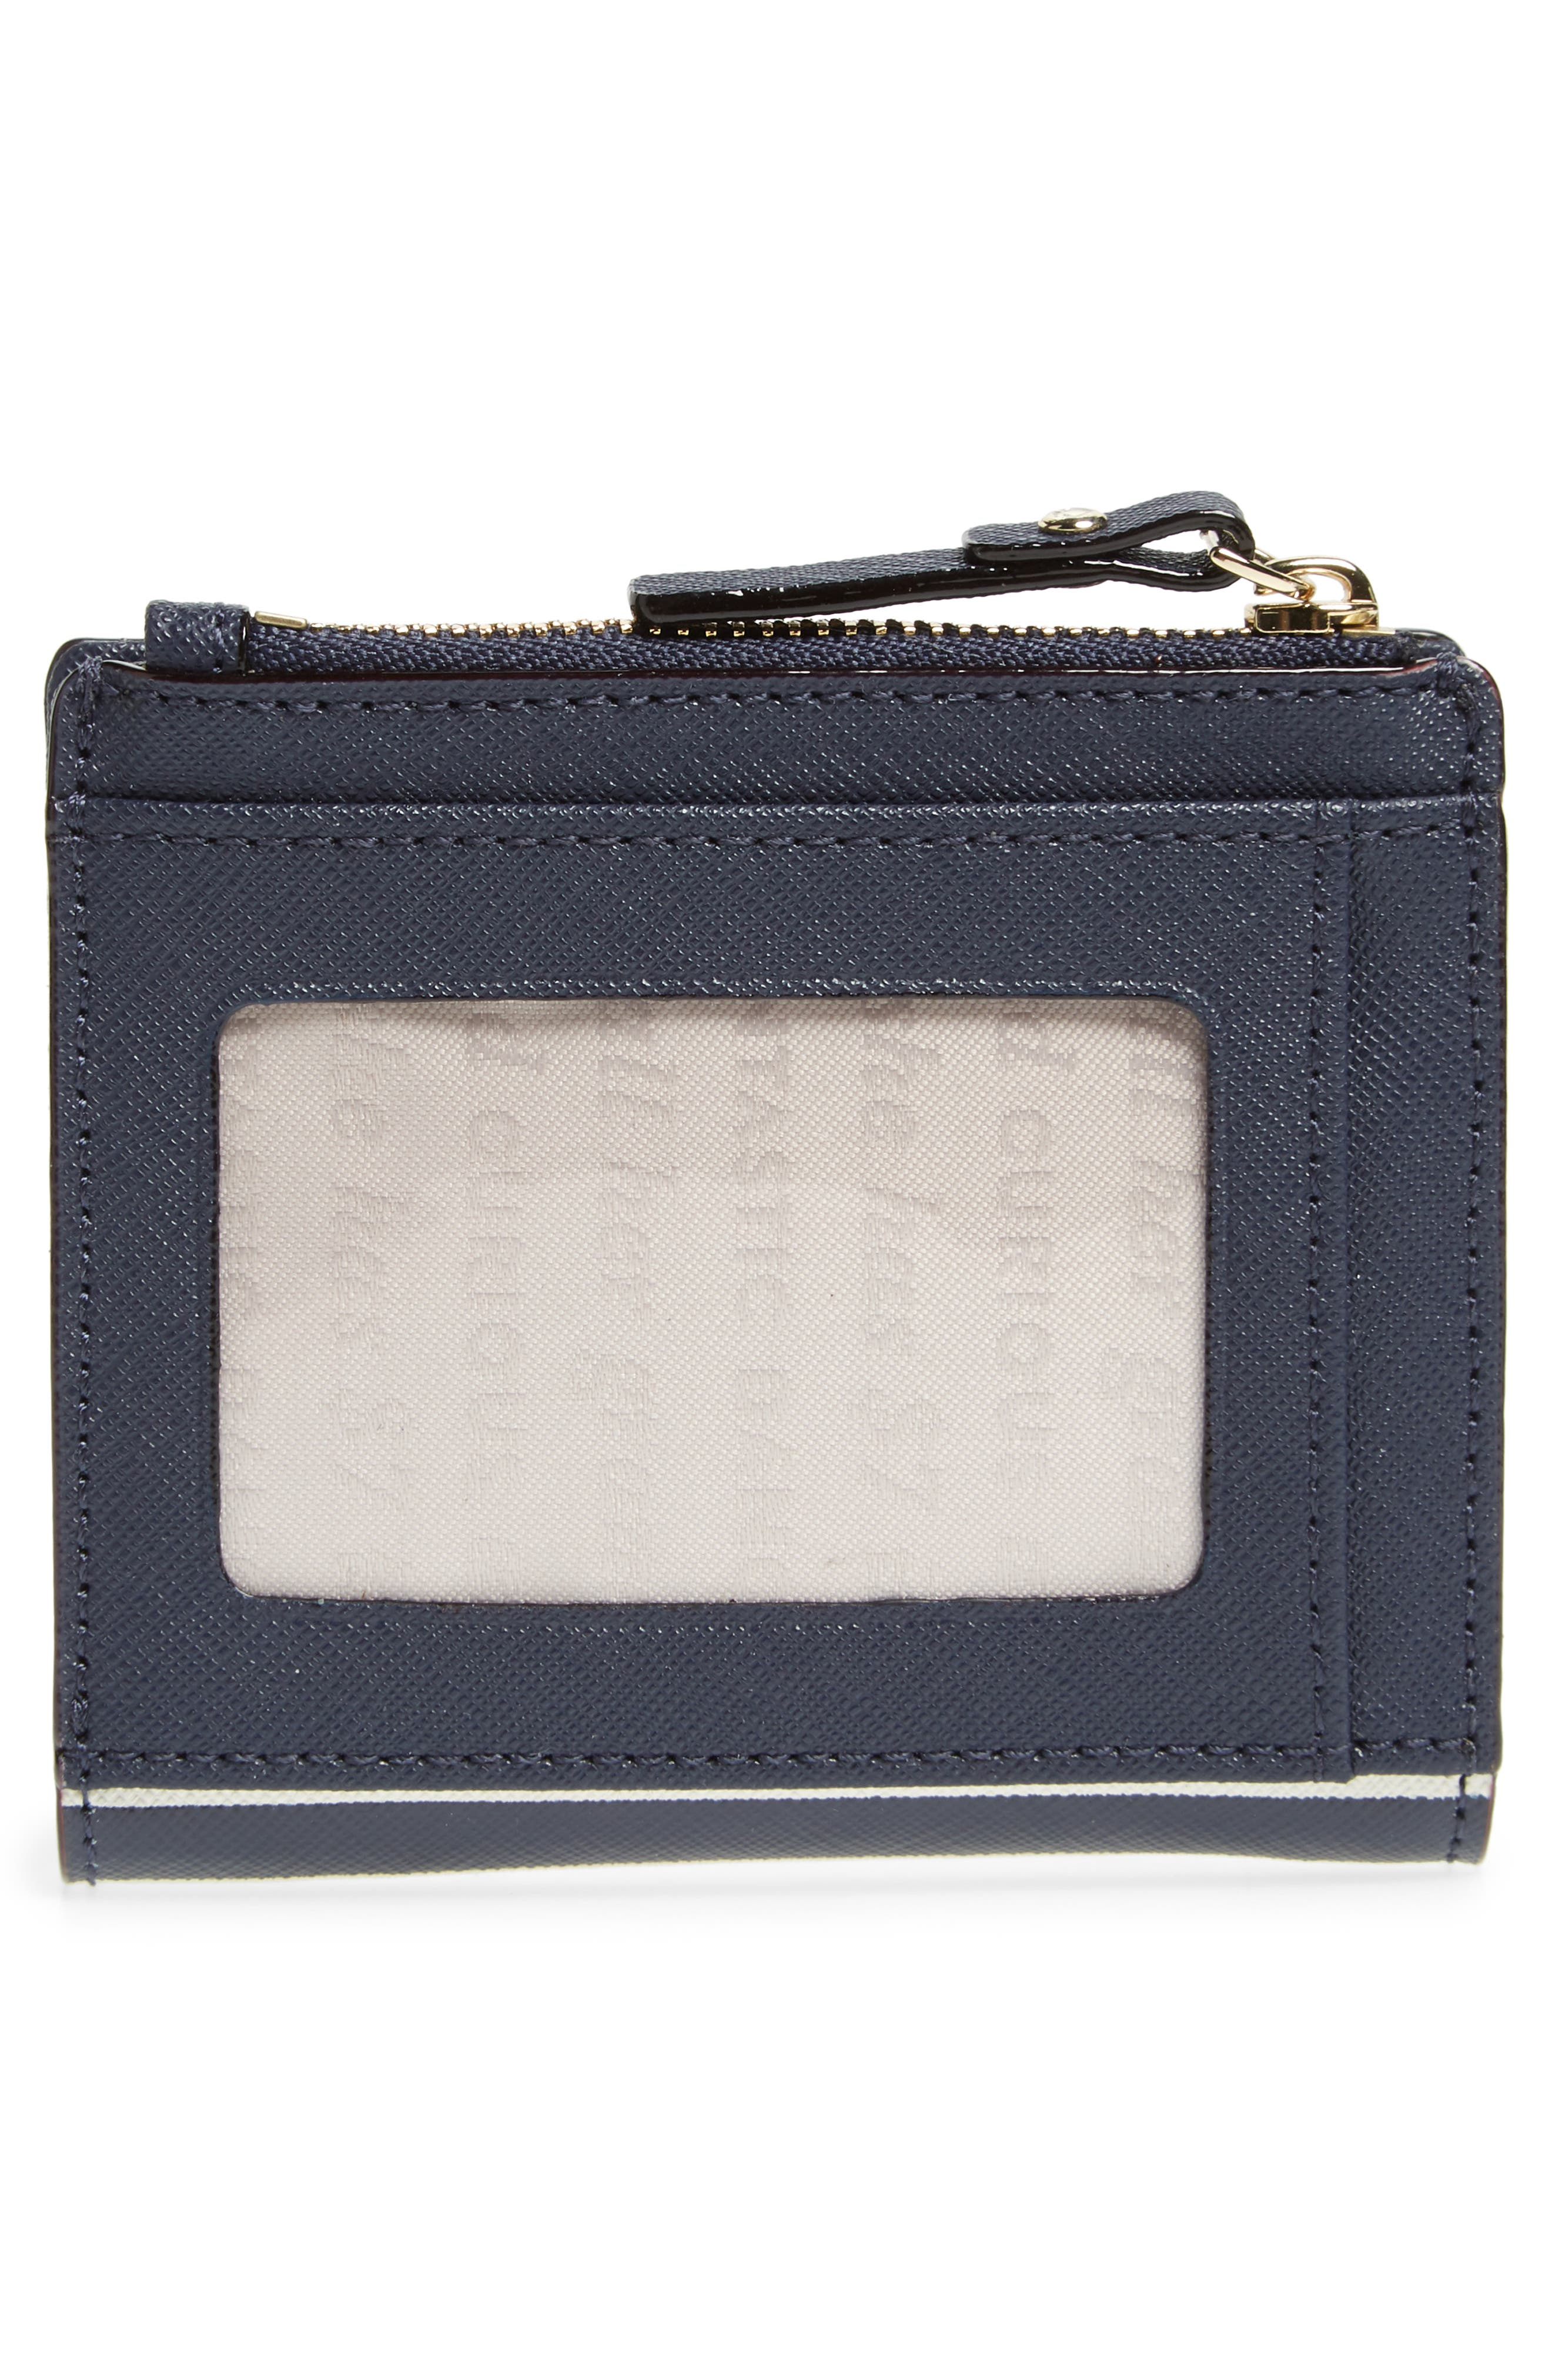 shore thing - stripe adalyn leather wallet,                             Alternate thumbnail 4, color,                             600